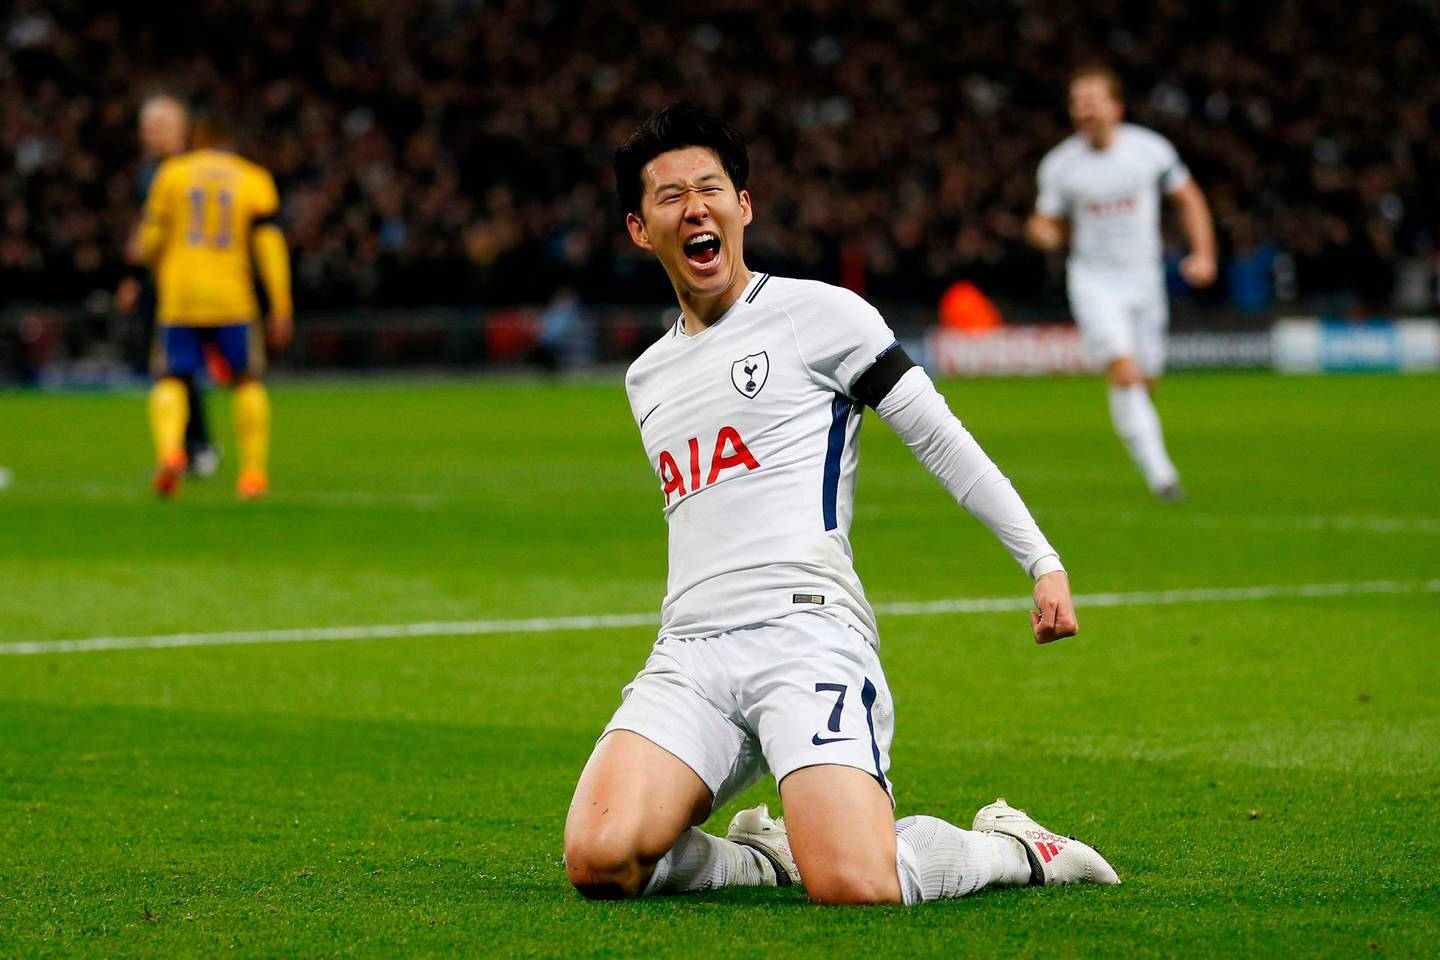 TOPSHOT - Tottenham Hotspur's South Korean striker Son Heung-Min celebrates scoring the opening goal during the UEFA Champions League round of sixteen second leg football match between Tottenham Hotspur and Juventus at Wembley Stadium in London, on March 7, 2018. / AFP PHOTO / IKIMAGES / Ian KINGTON